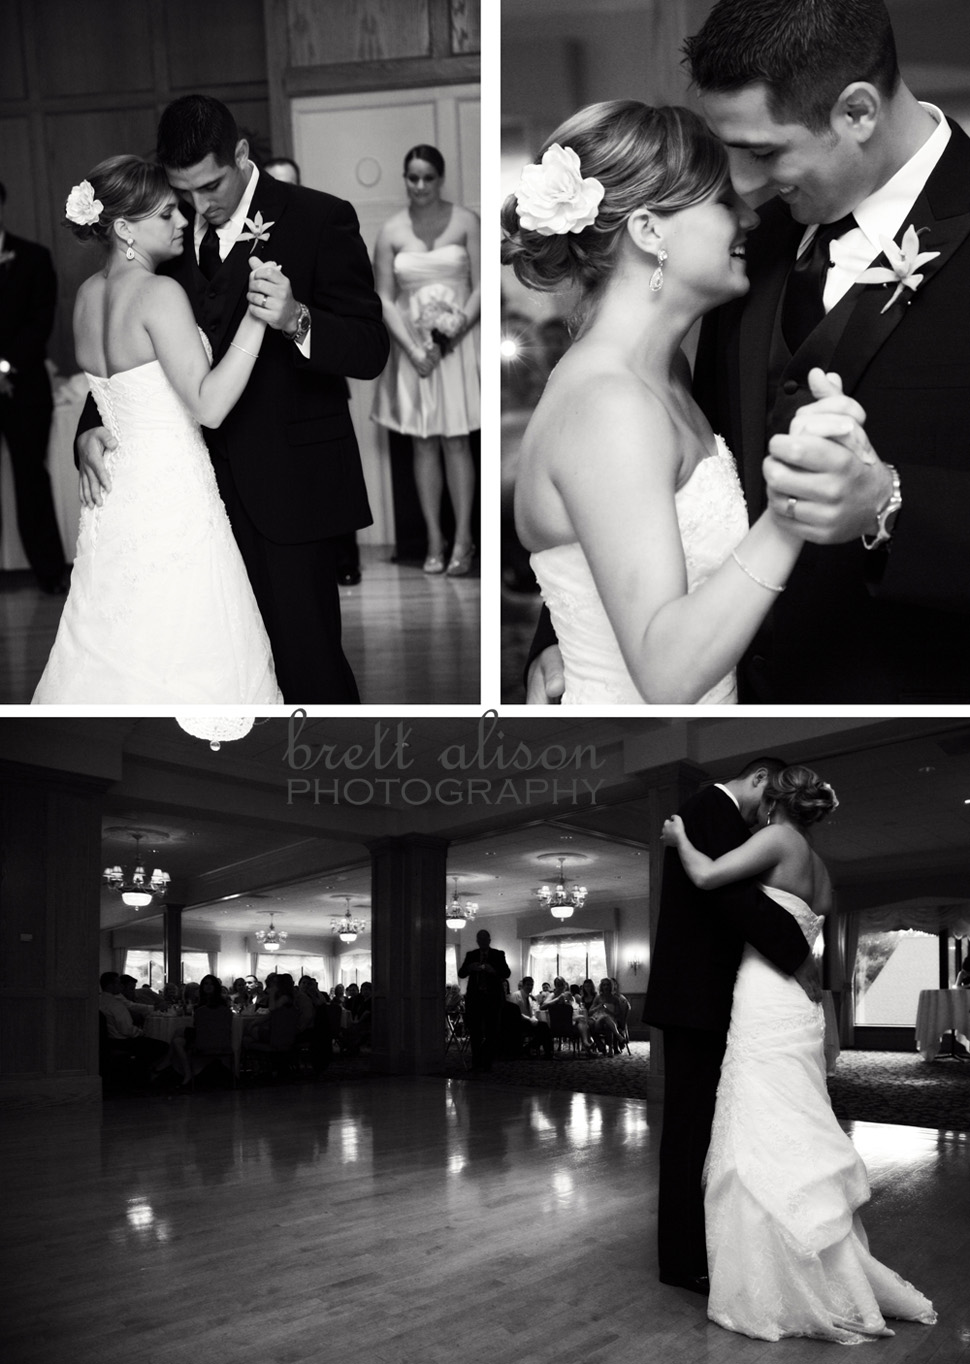 sarah and ryan's first dance at their wedding reception